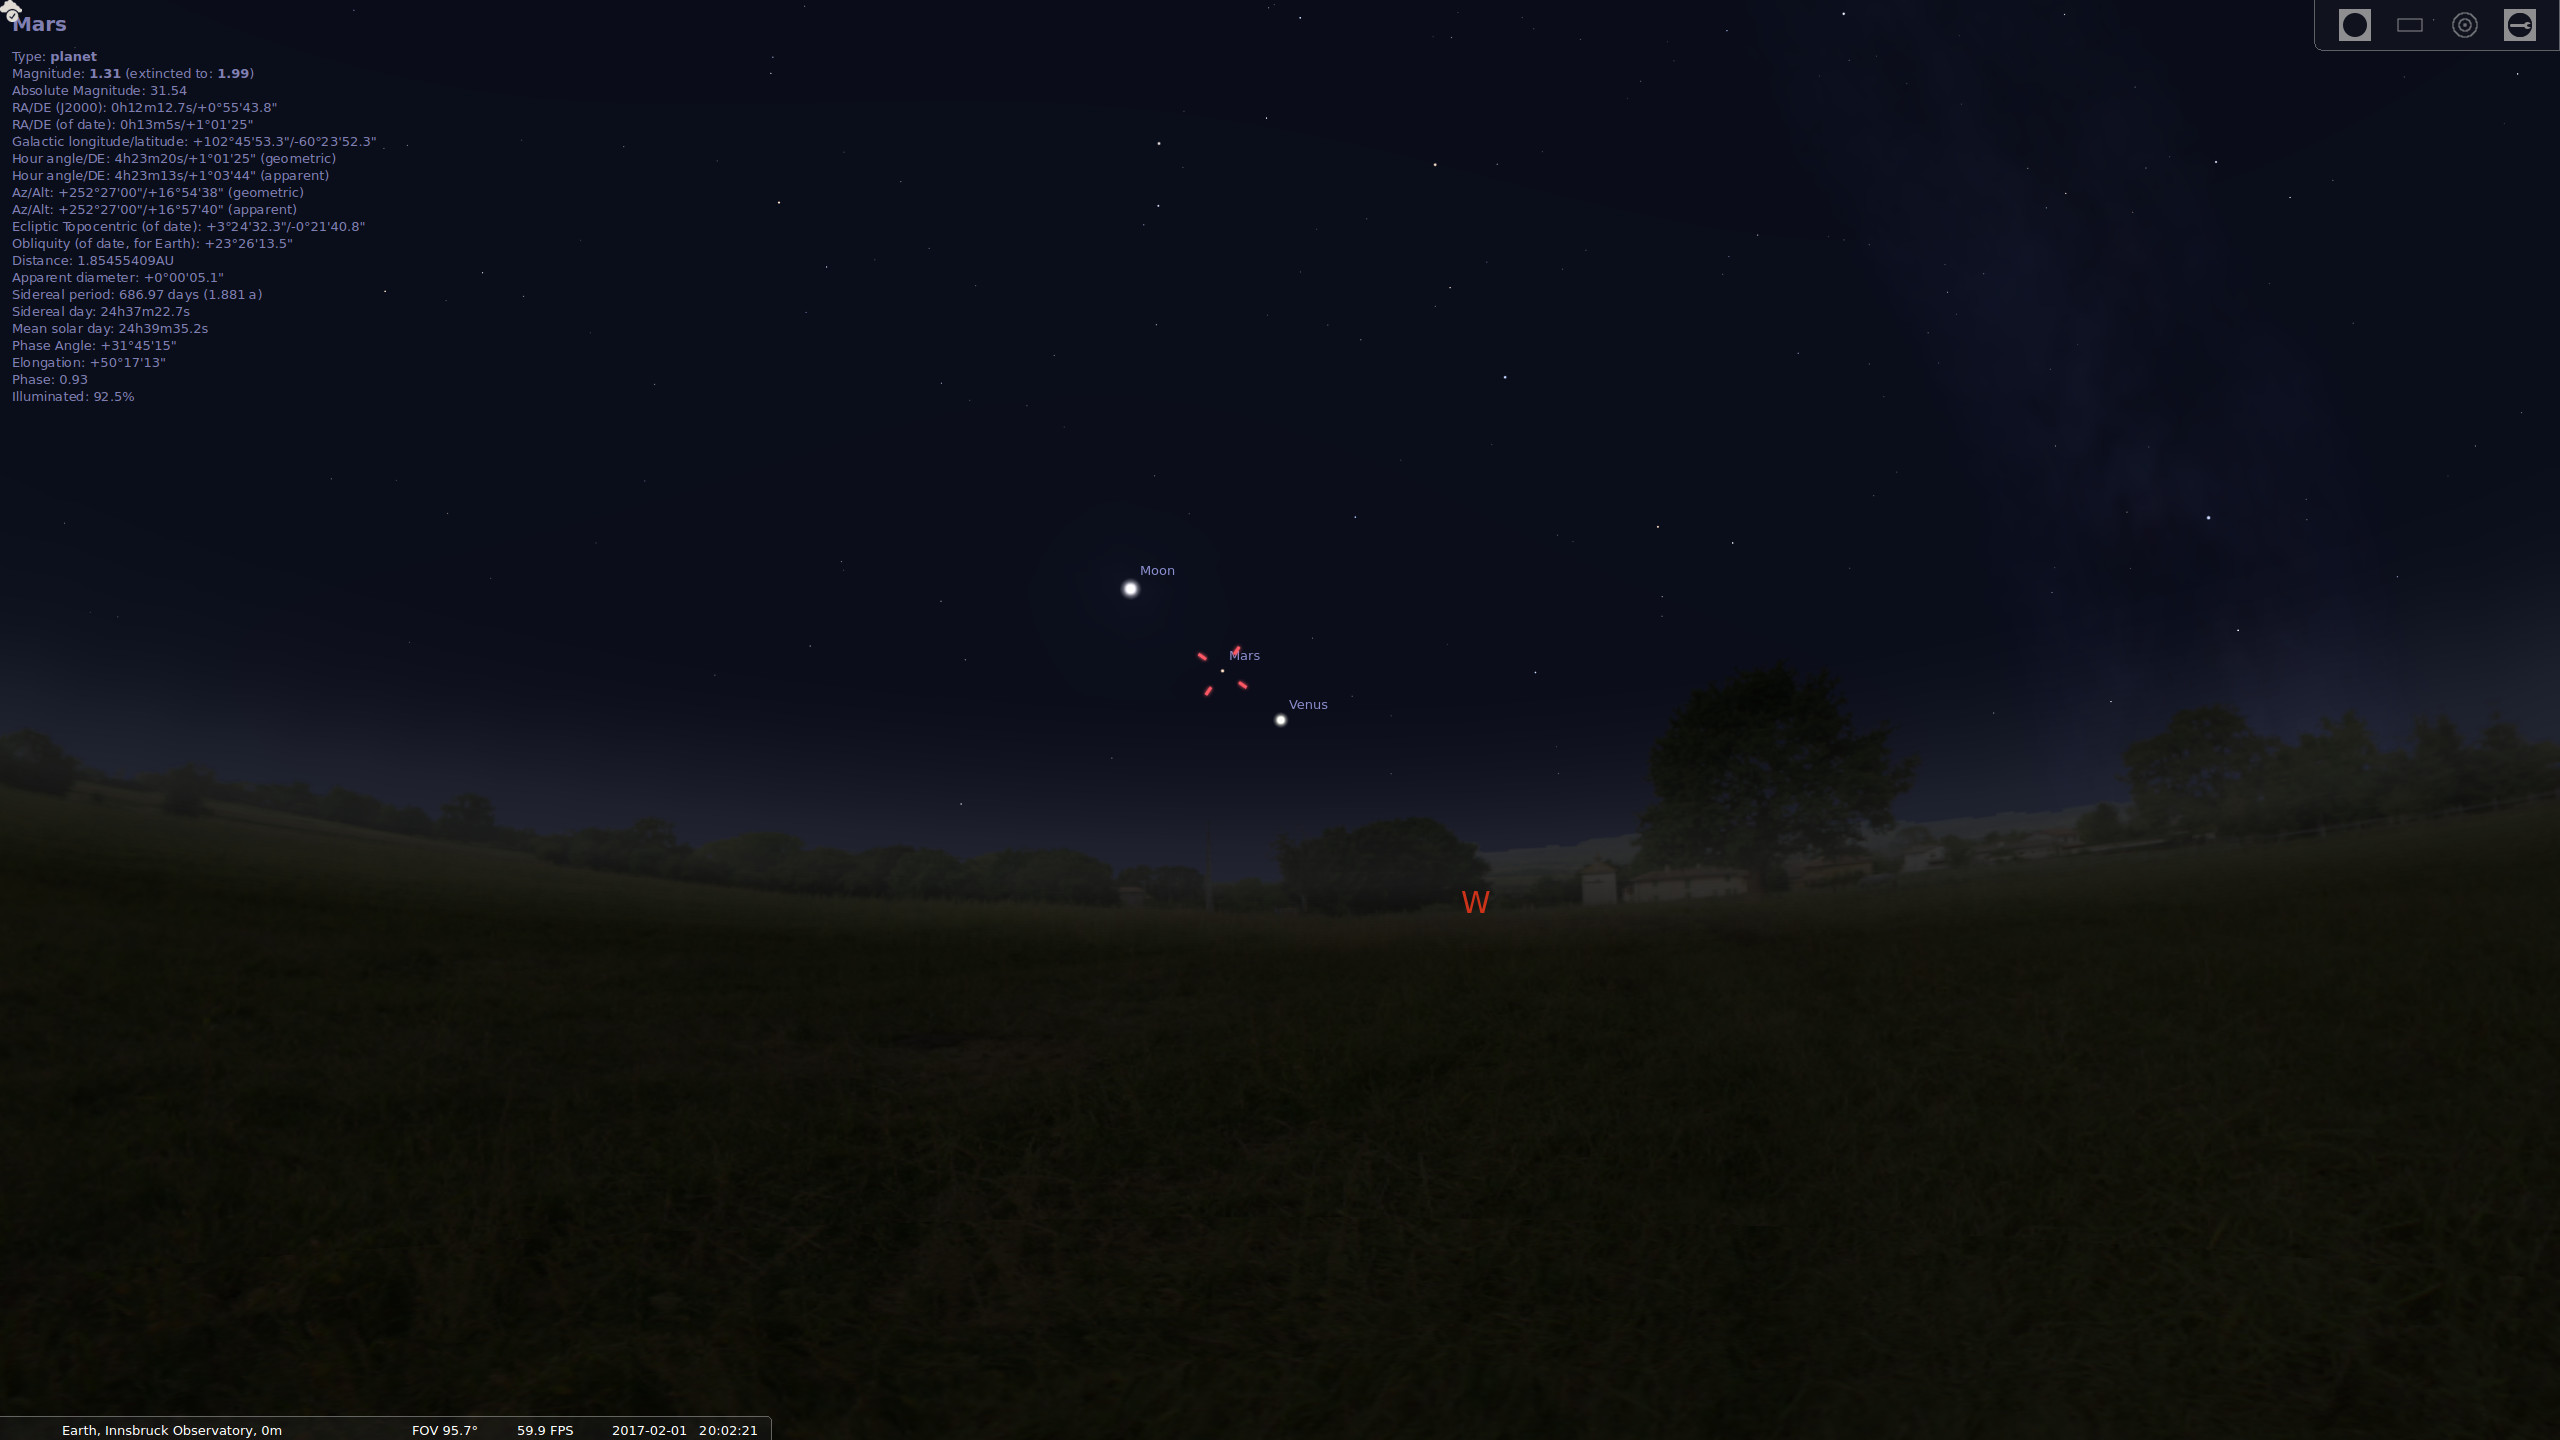 Venus and Mars next to each other in the sky